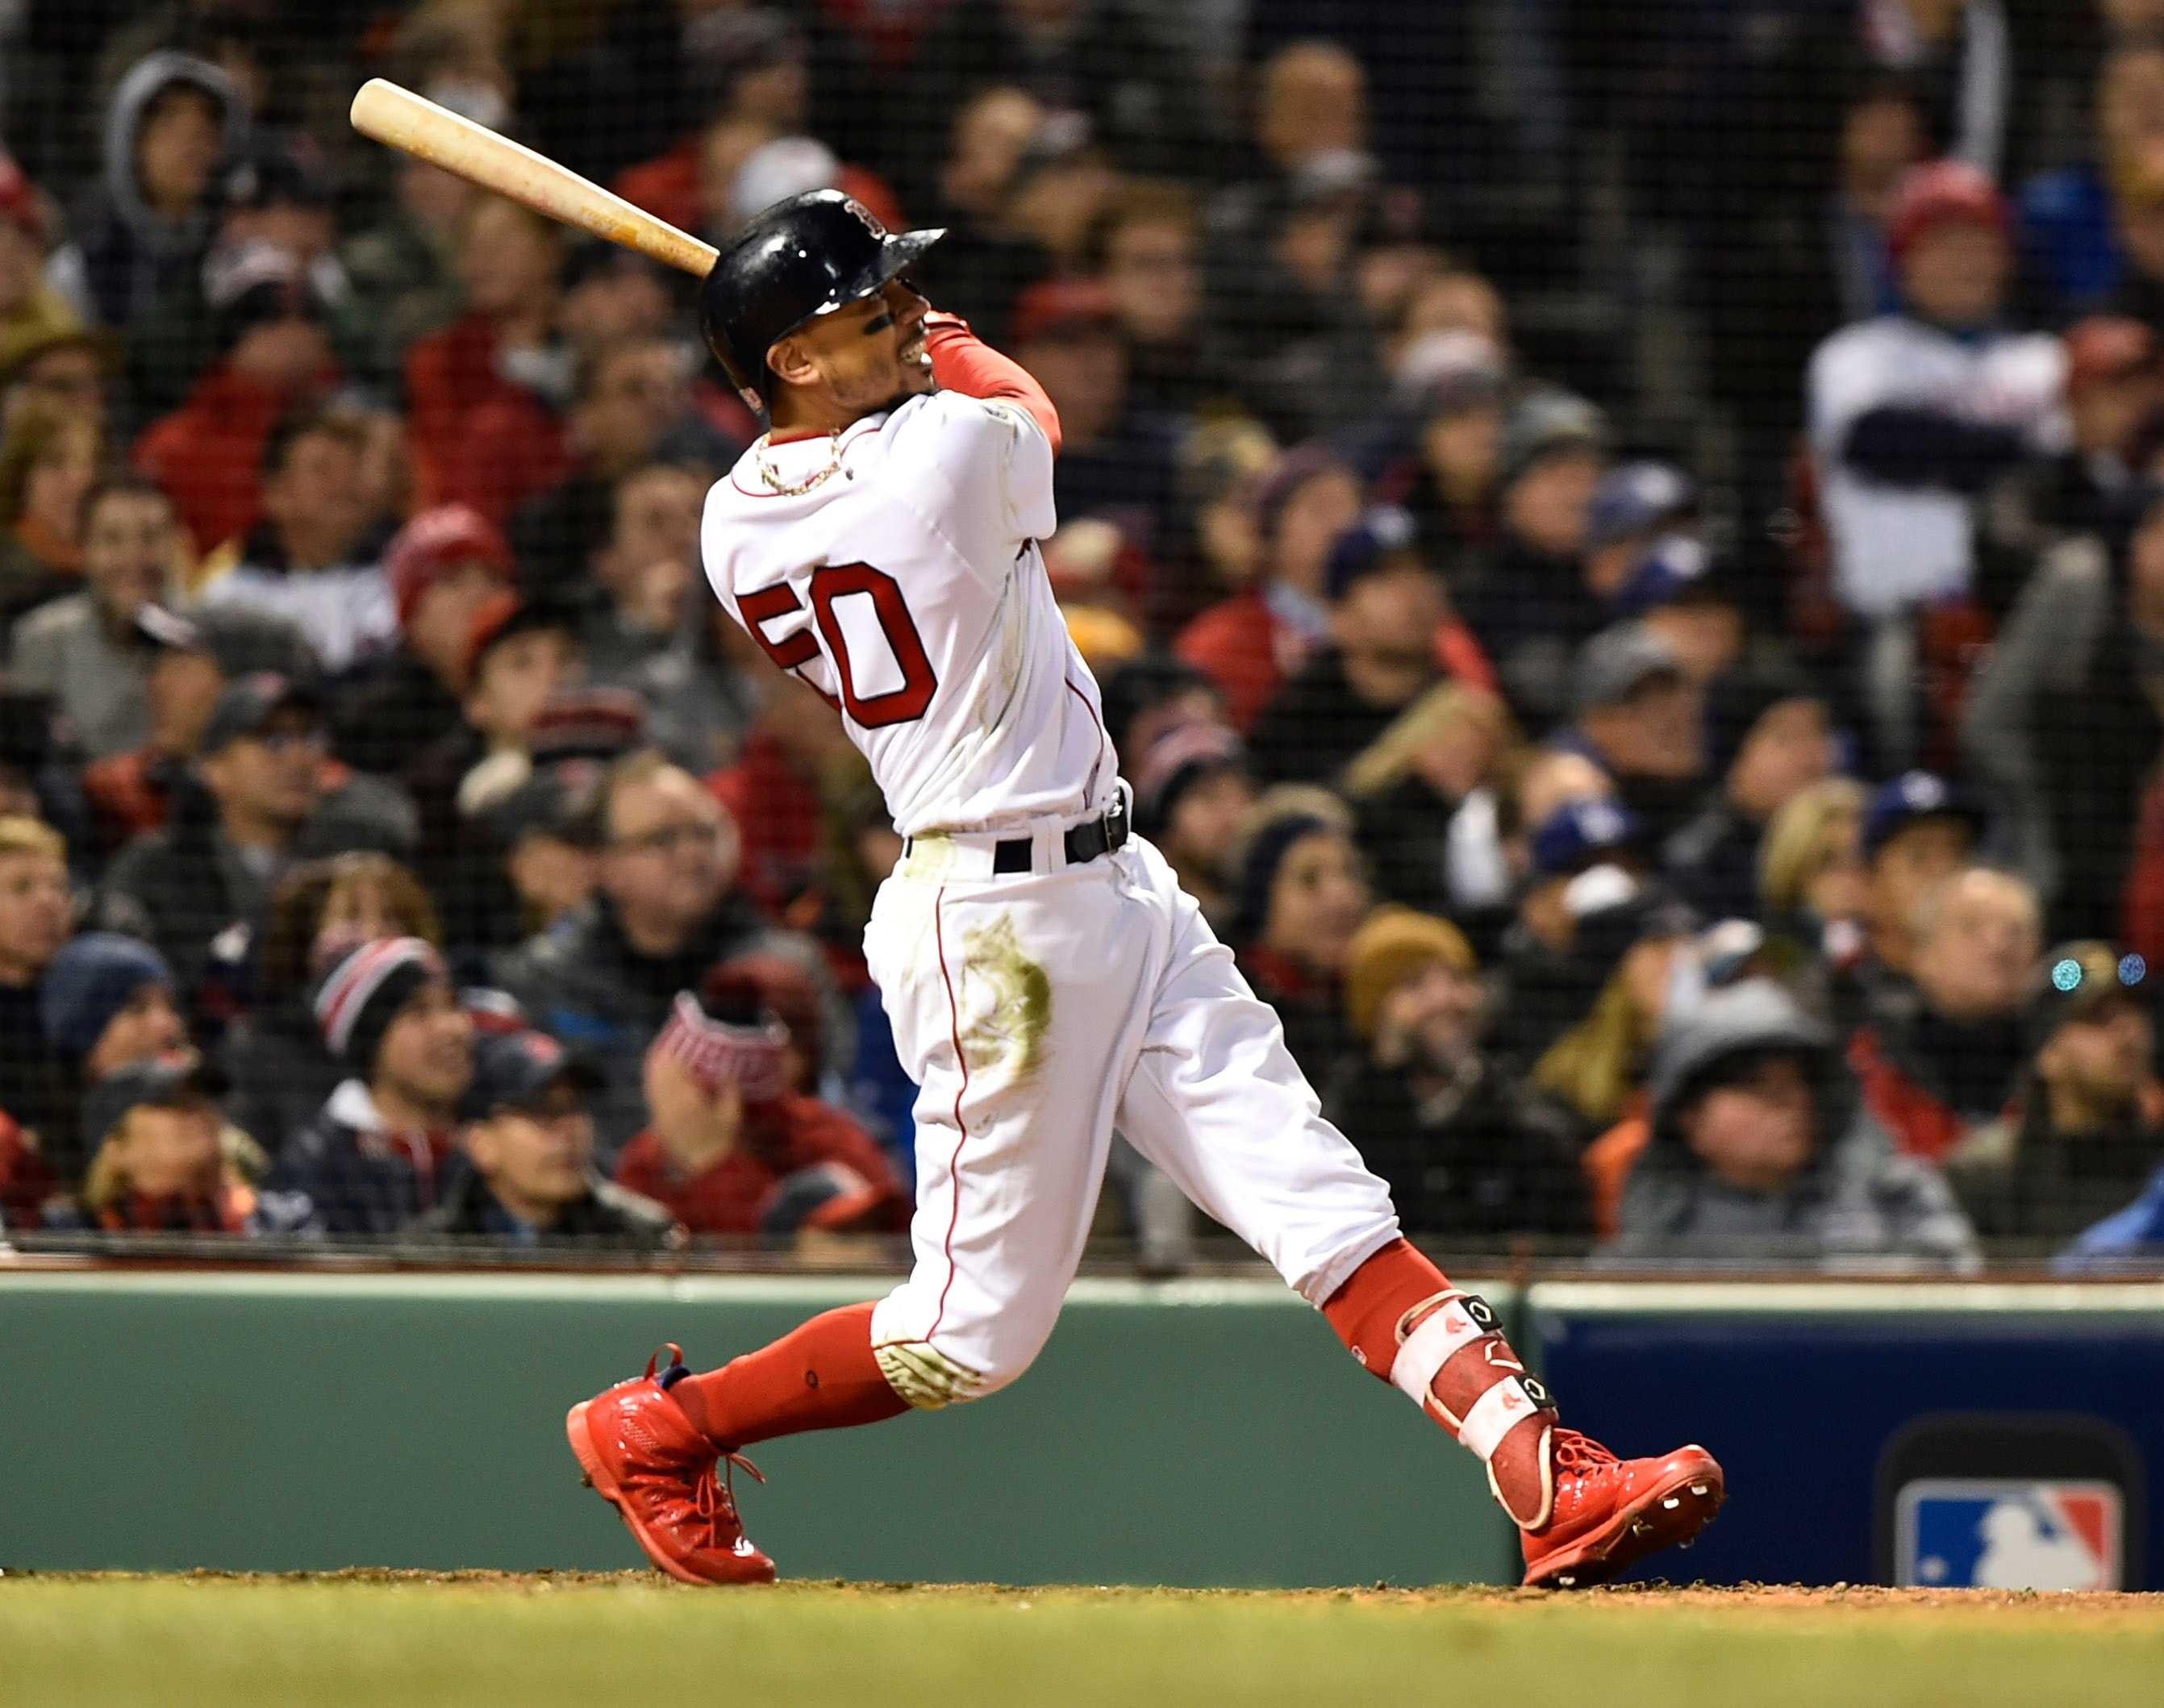 MLB Awards Finalists Announced, Betts Among MVP Candidates